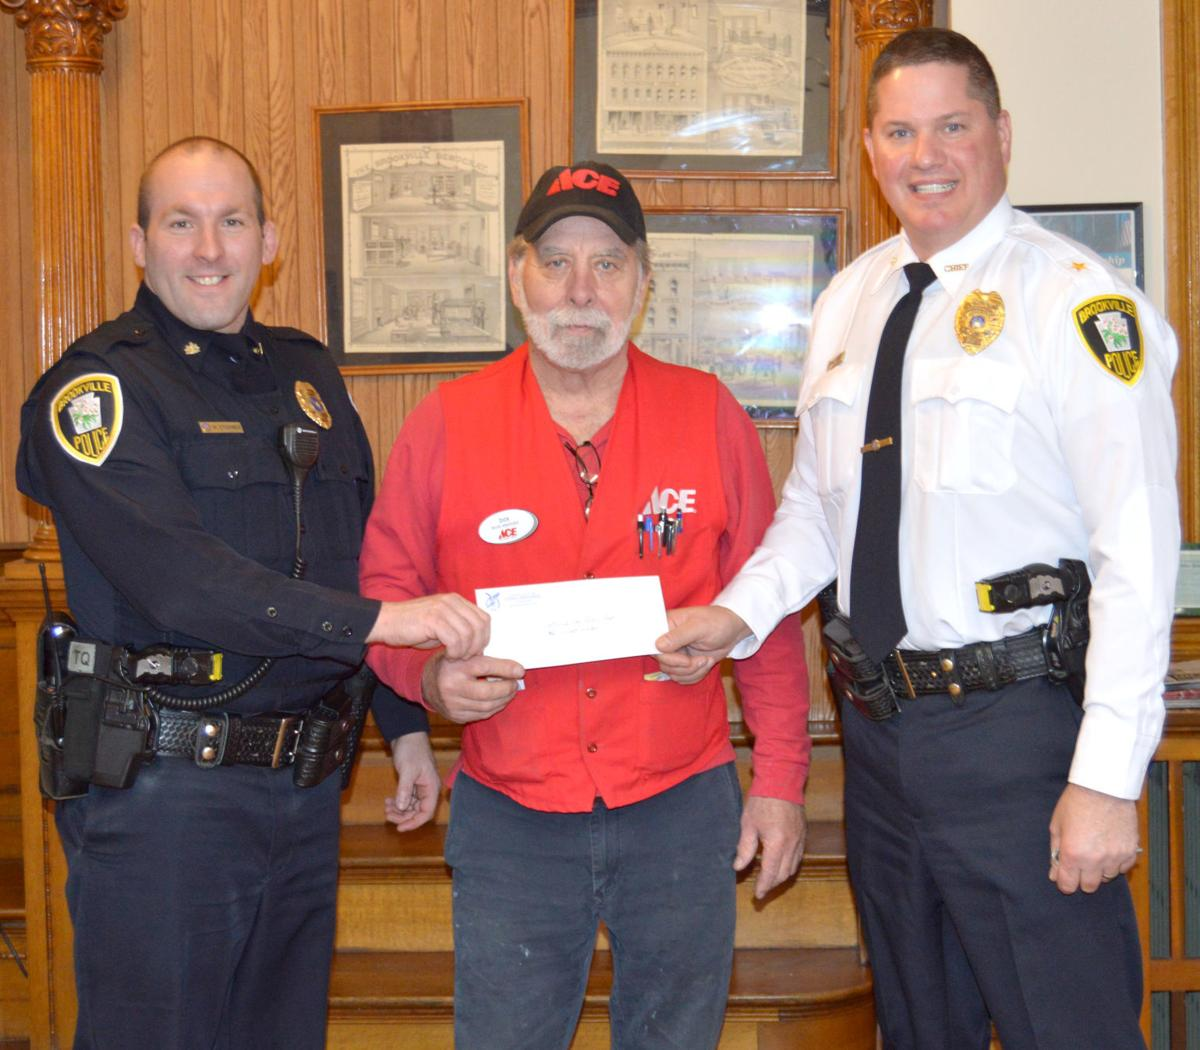 Brookville Eagles donate $10,000 to borough police department